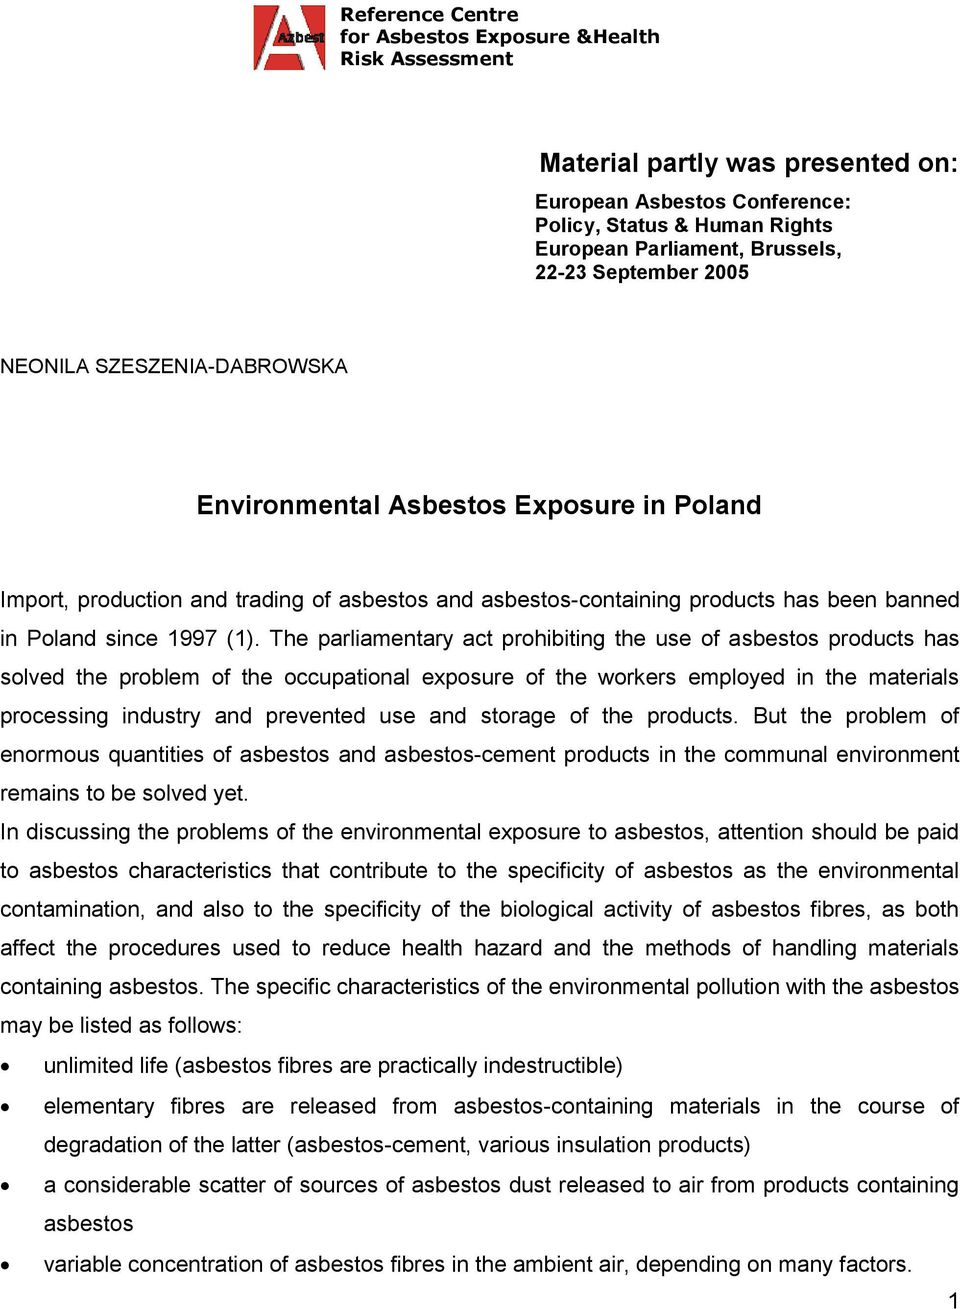 (1). The parliamentary act prohibiting the use of asbestos products has solved the problem of the occupational exposure of the workers employed in the materials processing industry and prevented use